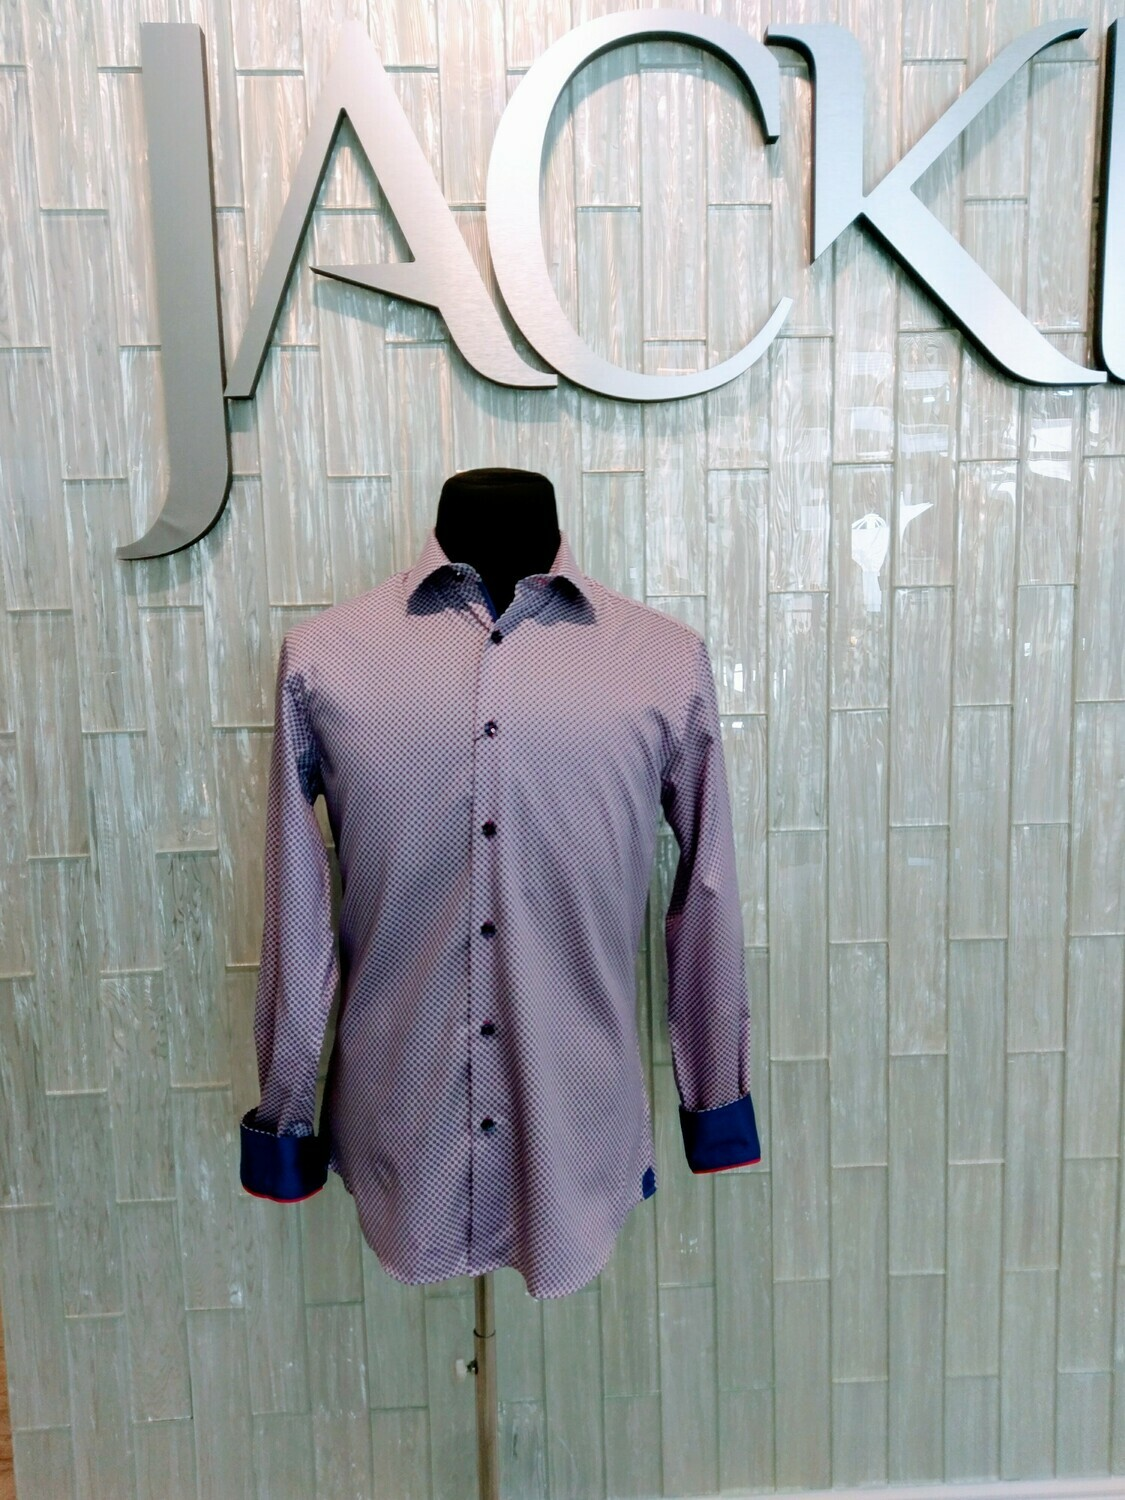 Jackie Z Men's Dress Shirt Spring 2020 White Background With Blue and Pink Print